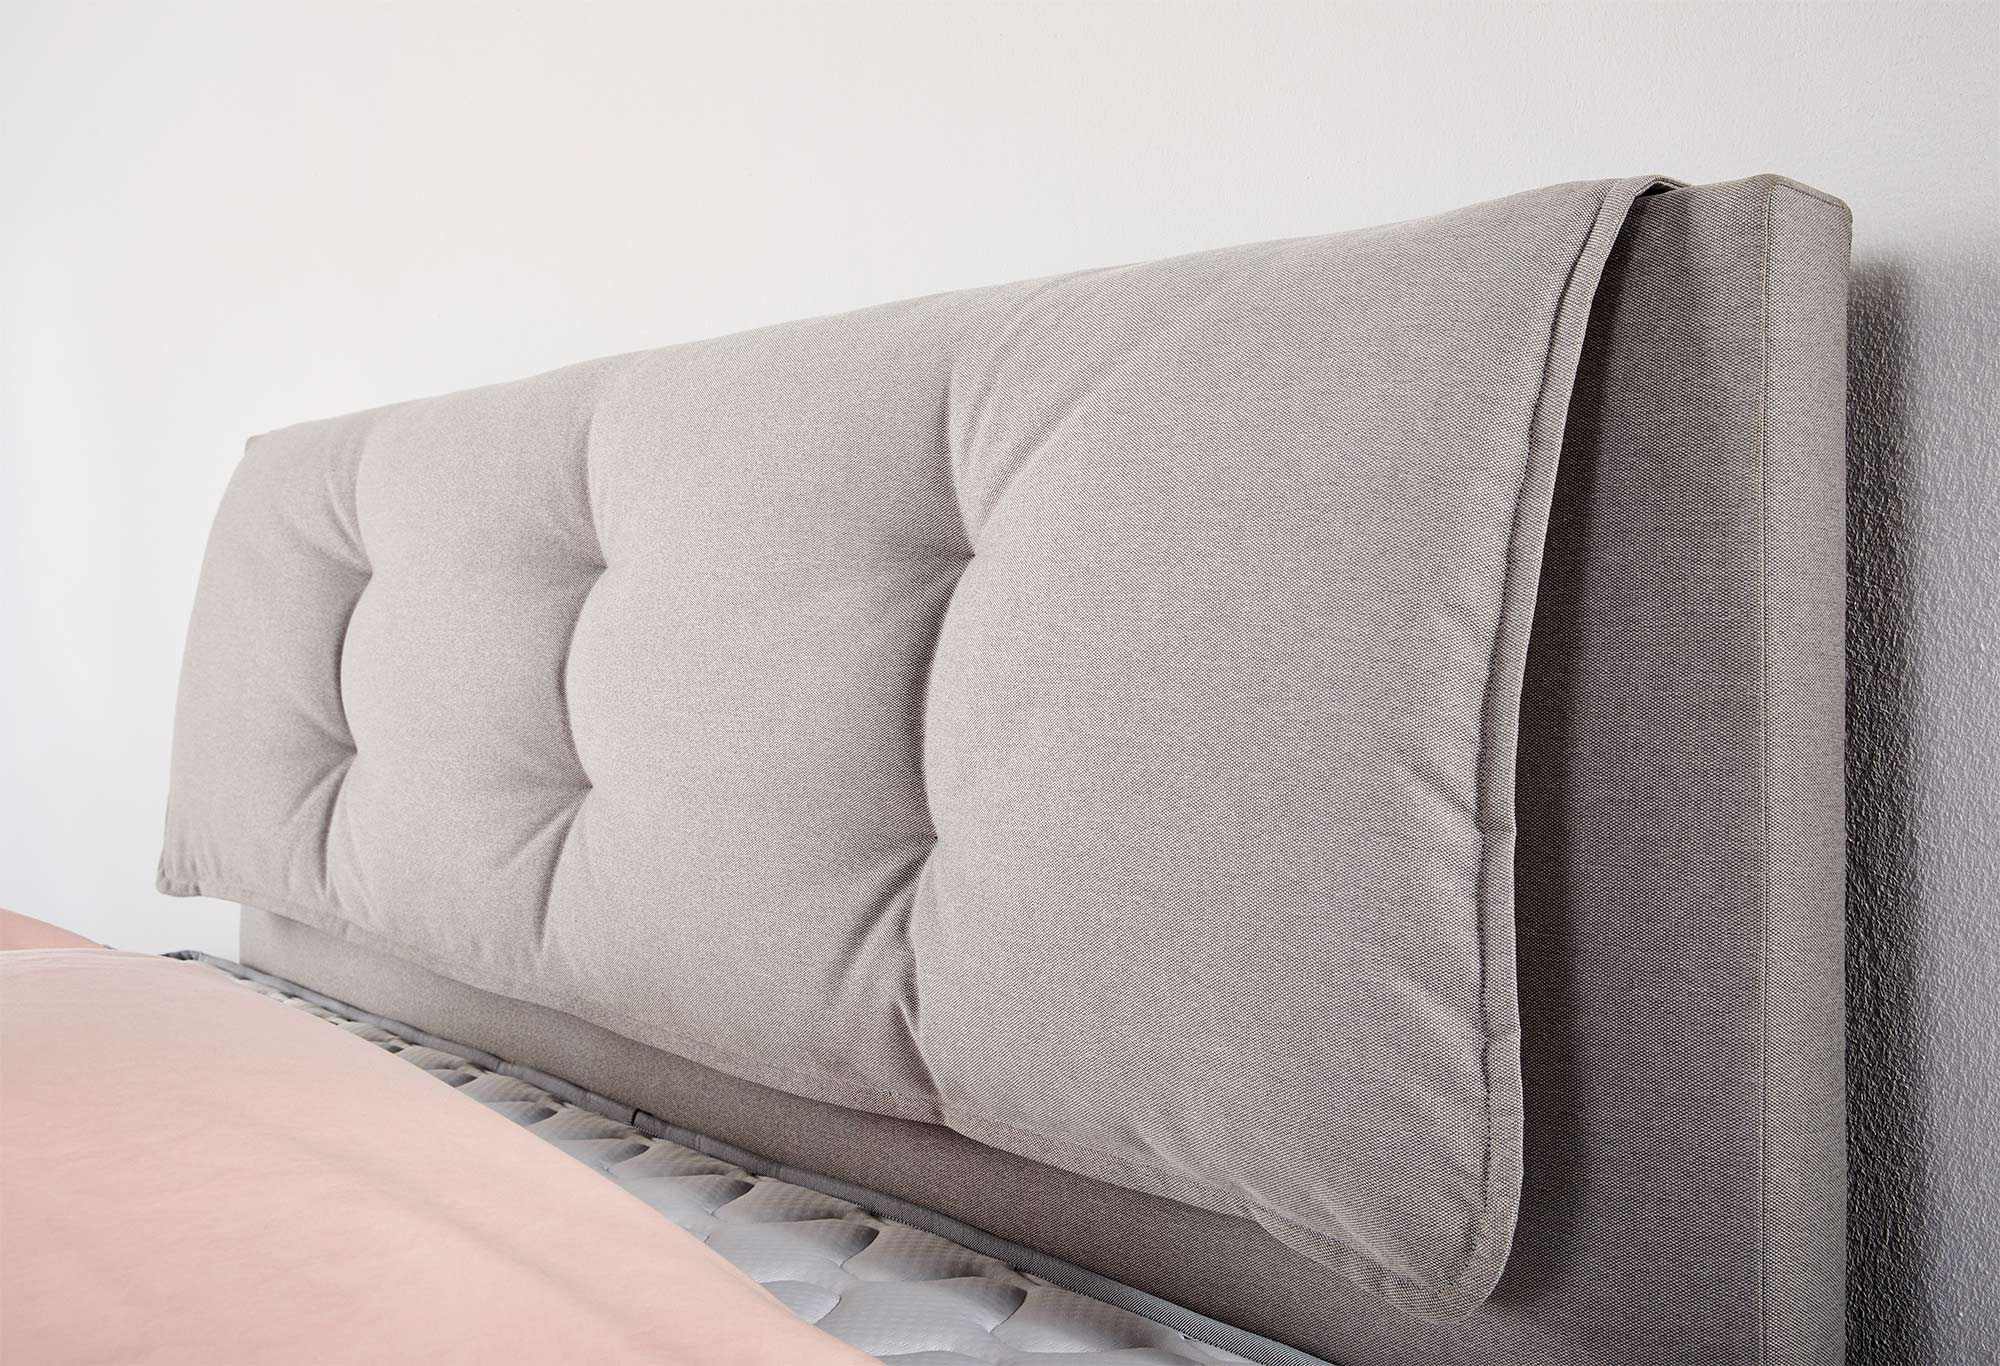 Boxspring Web-Only Relax Deluxe   Swiss Sense